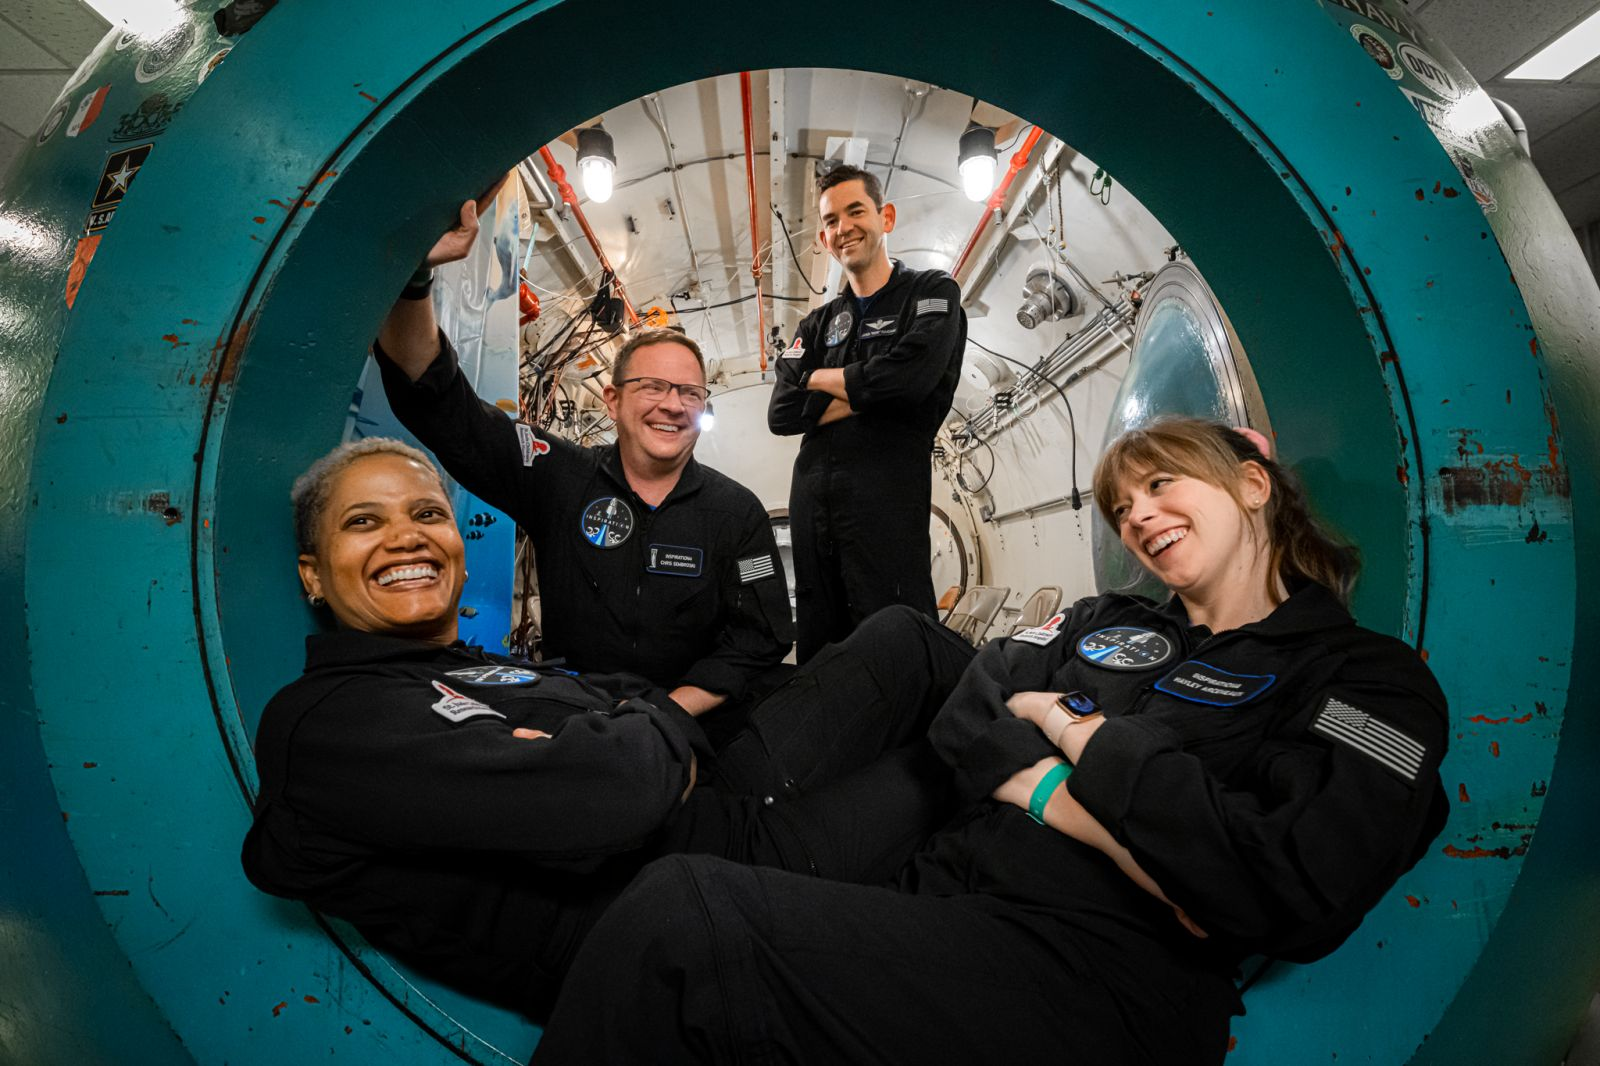 The Inspiration4 crew while training in an altitude chamber. From left to right: Sian Proctor, Chris Sembroski, Jared Isaacman and Hayley Arceneaux. Credit: Inspiration4 / John Kraus